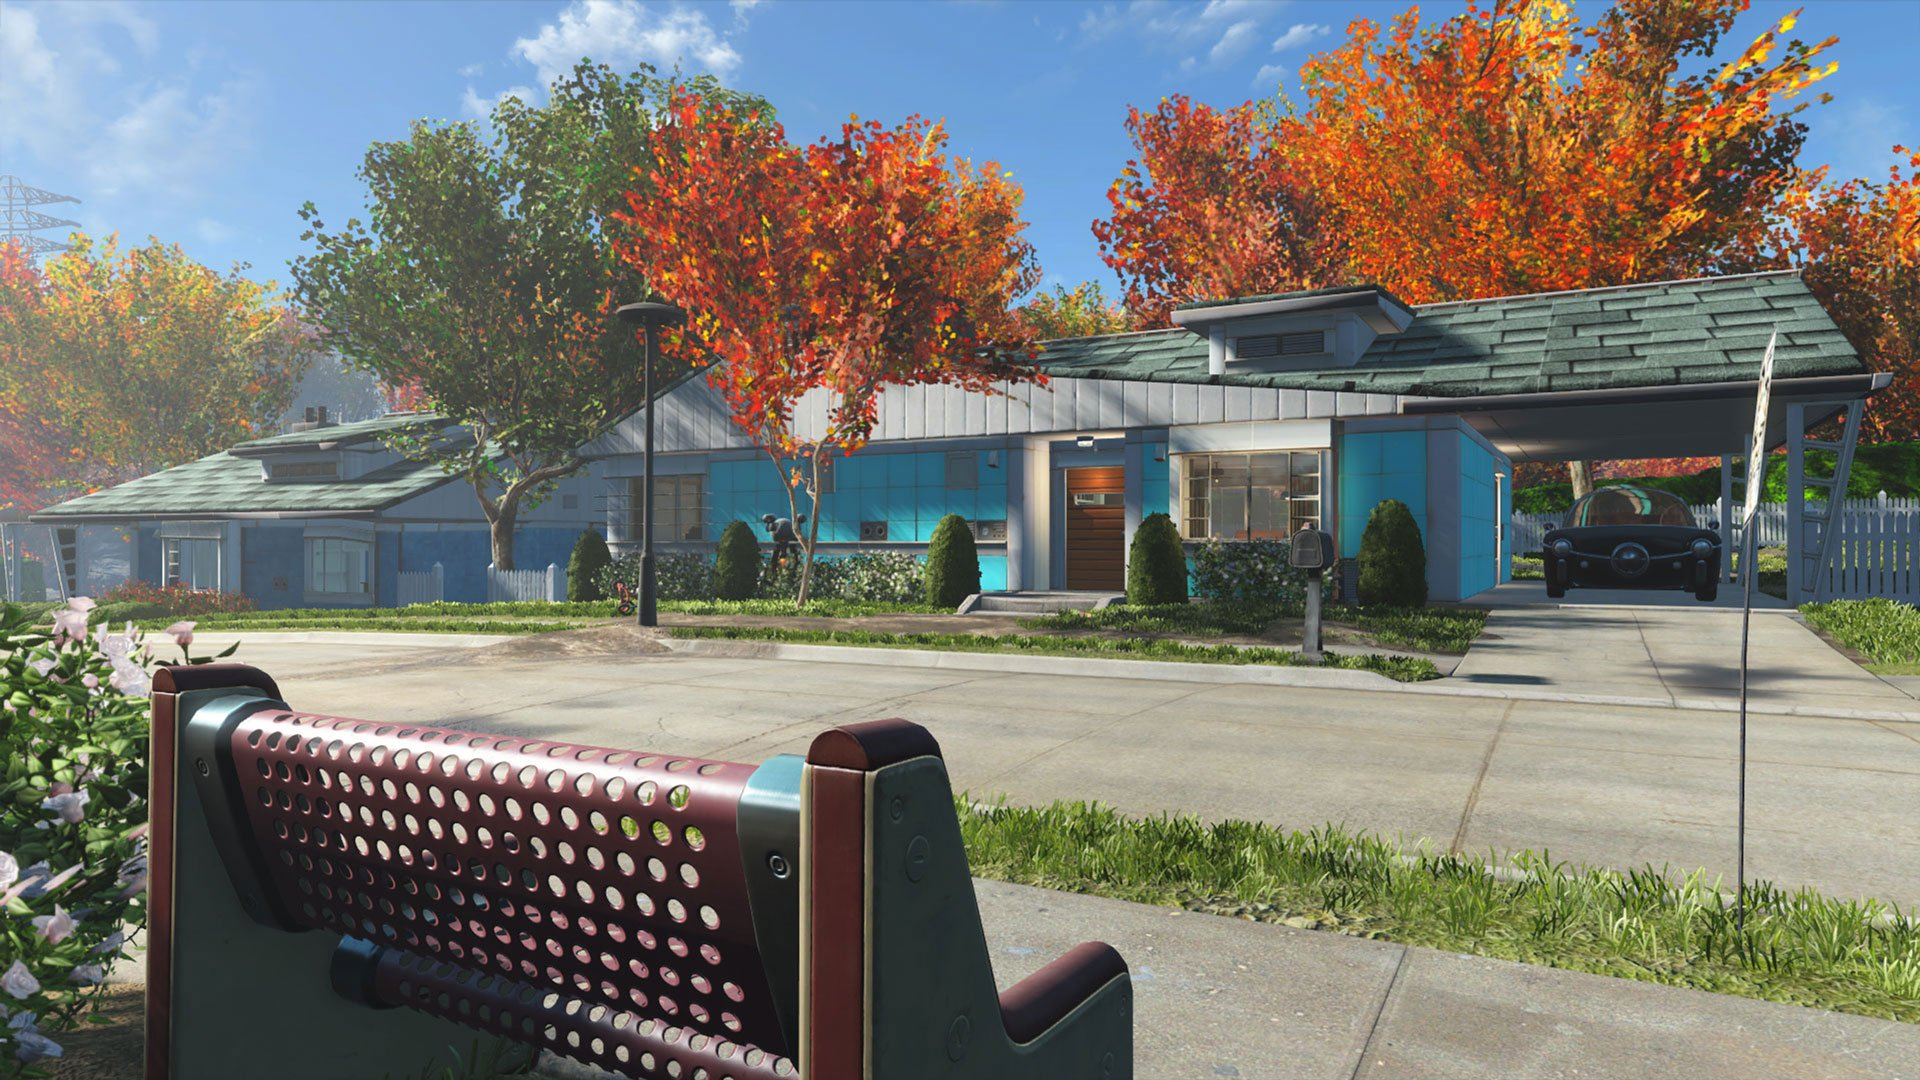 fallout 4 settlement and building mods for ps4 no build limit